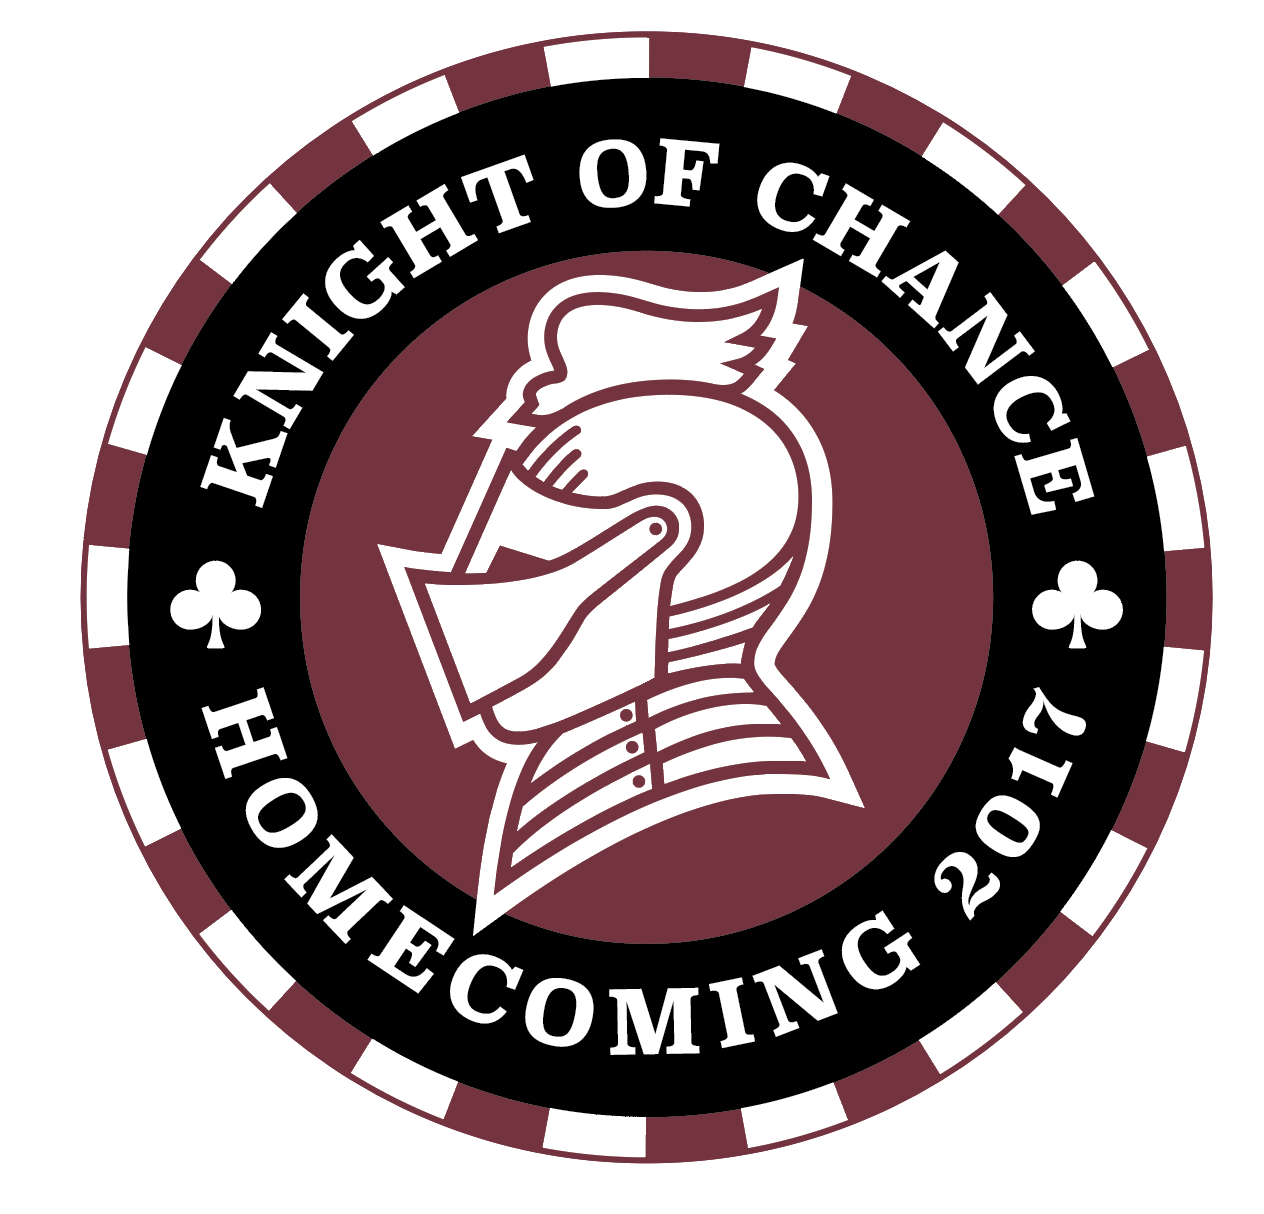 homecoming logo.PNG